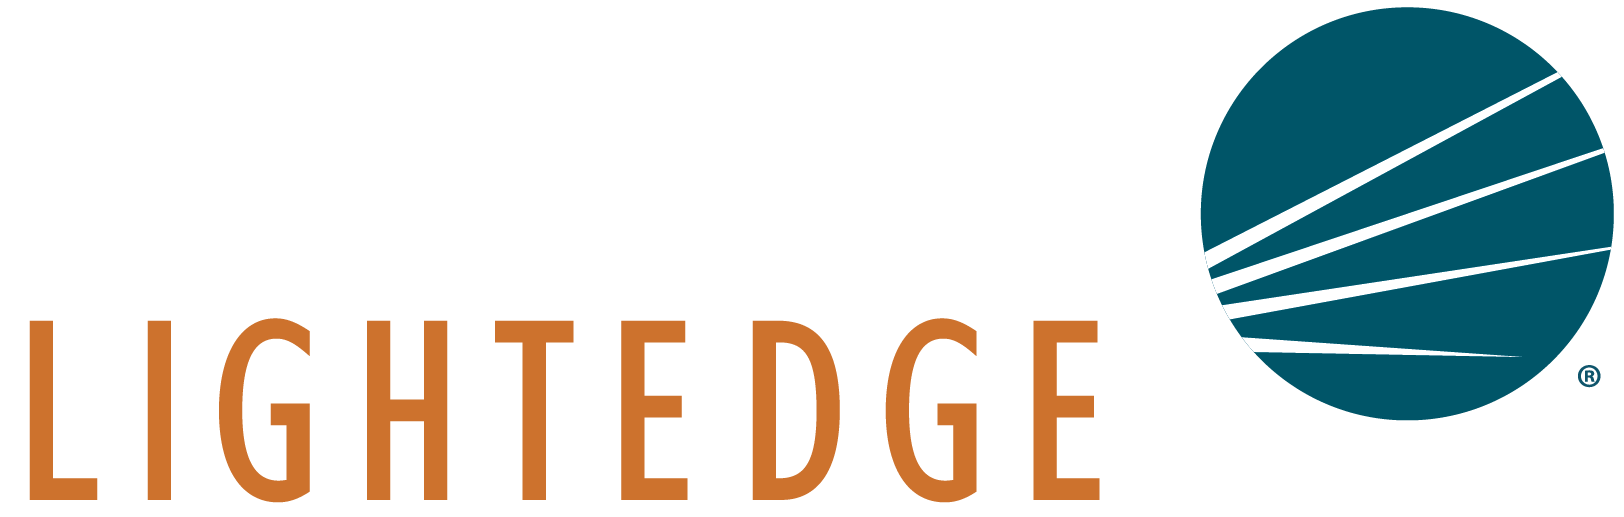 LightEdge Solutions | Compliant Cloud Hosting, Colocation